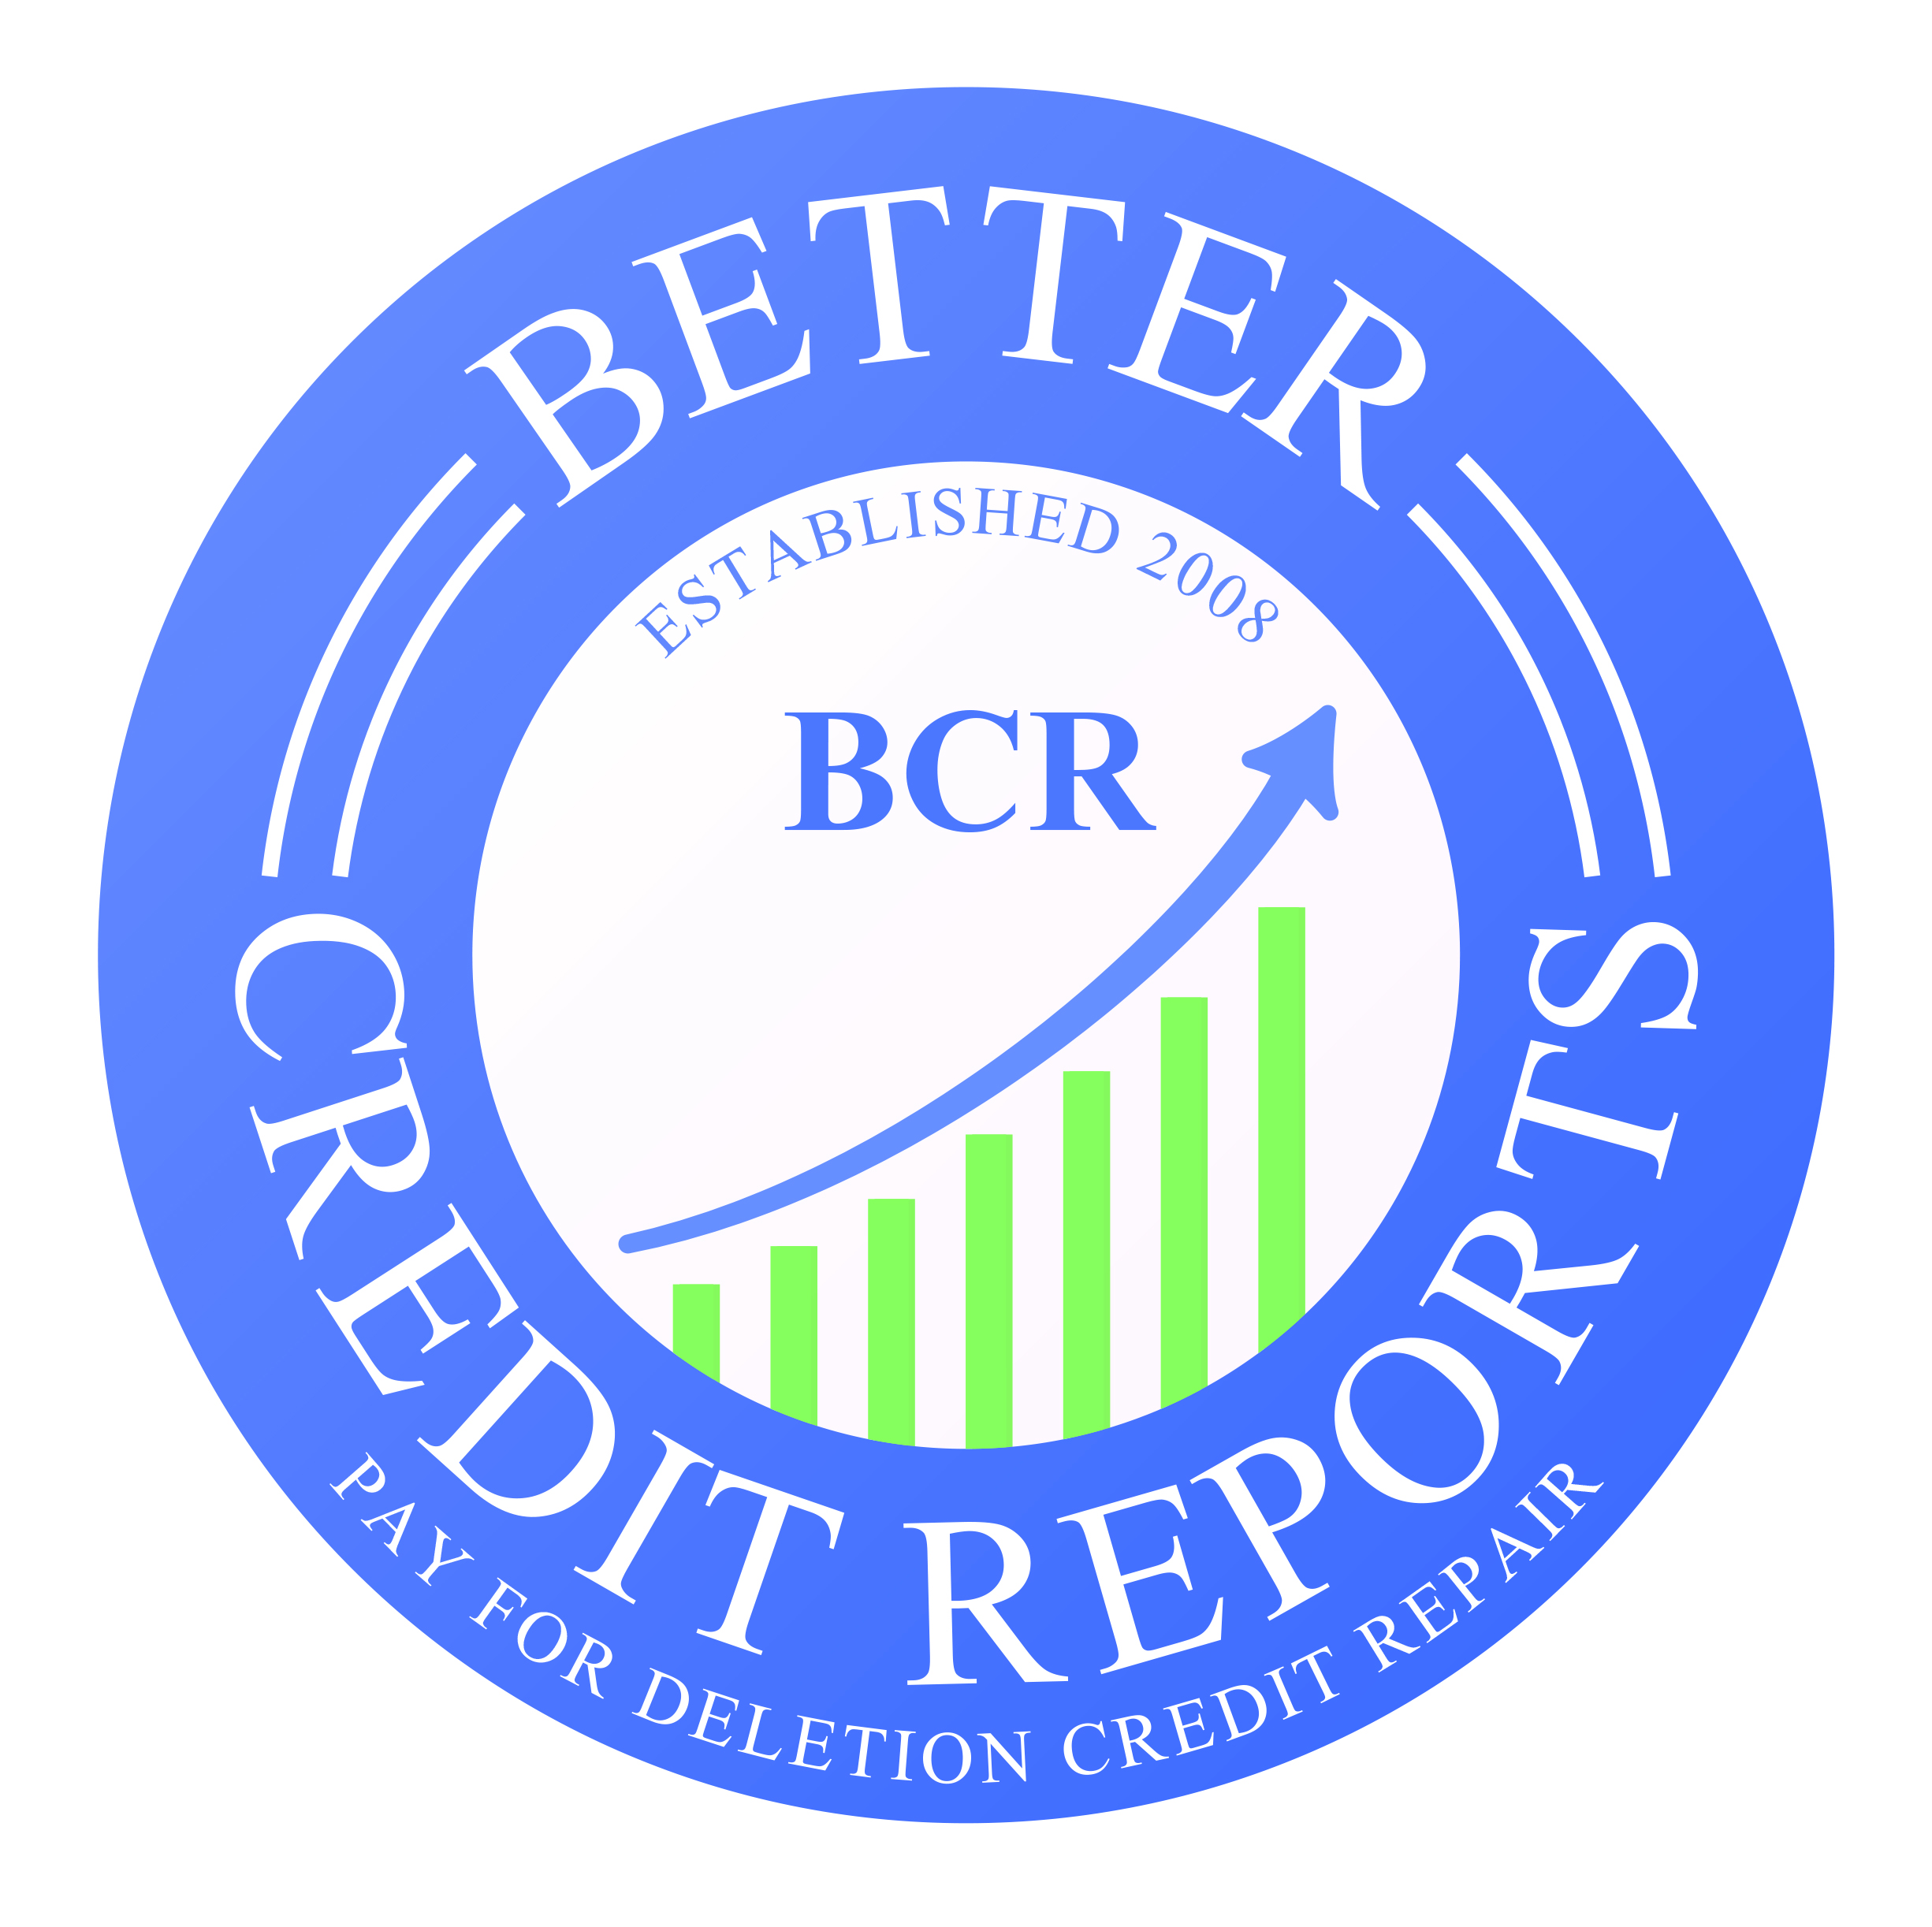 Pay per performance credit repaair